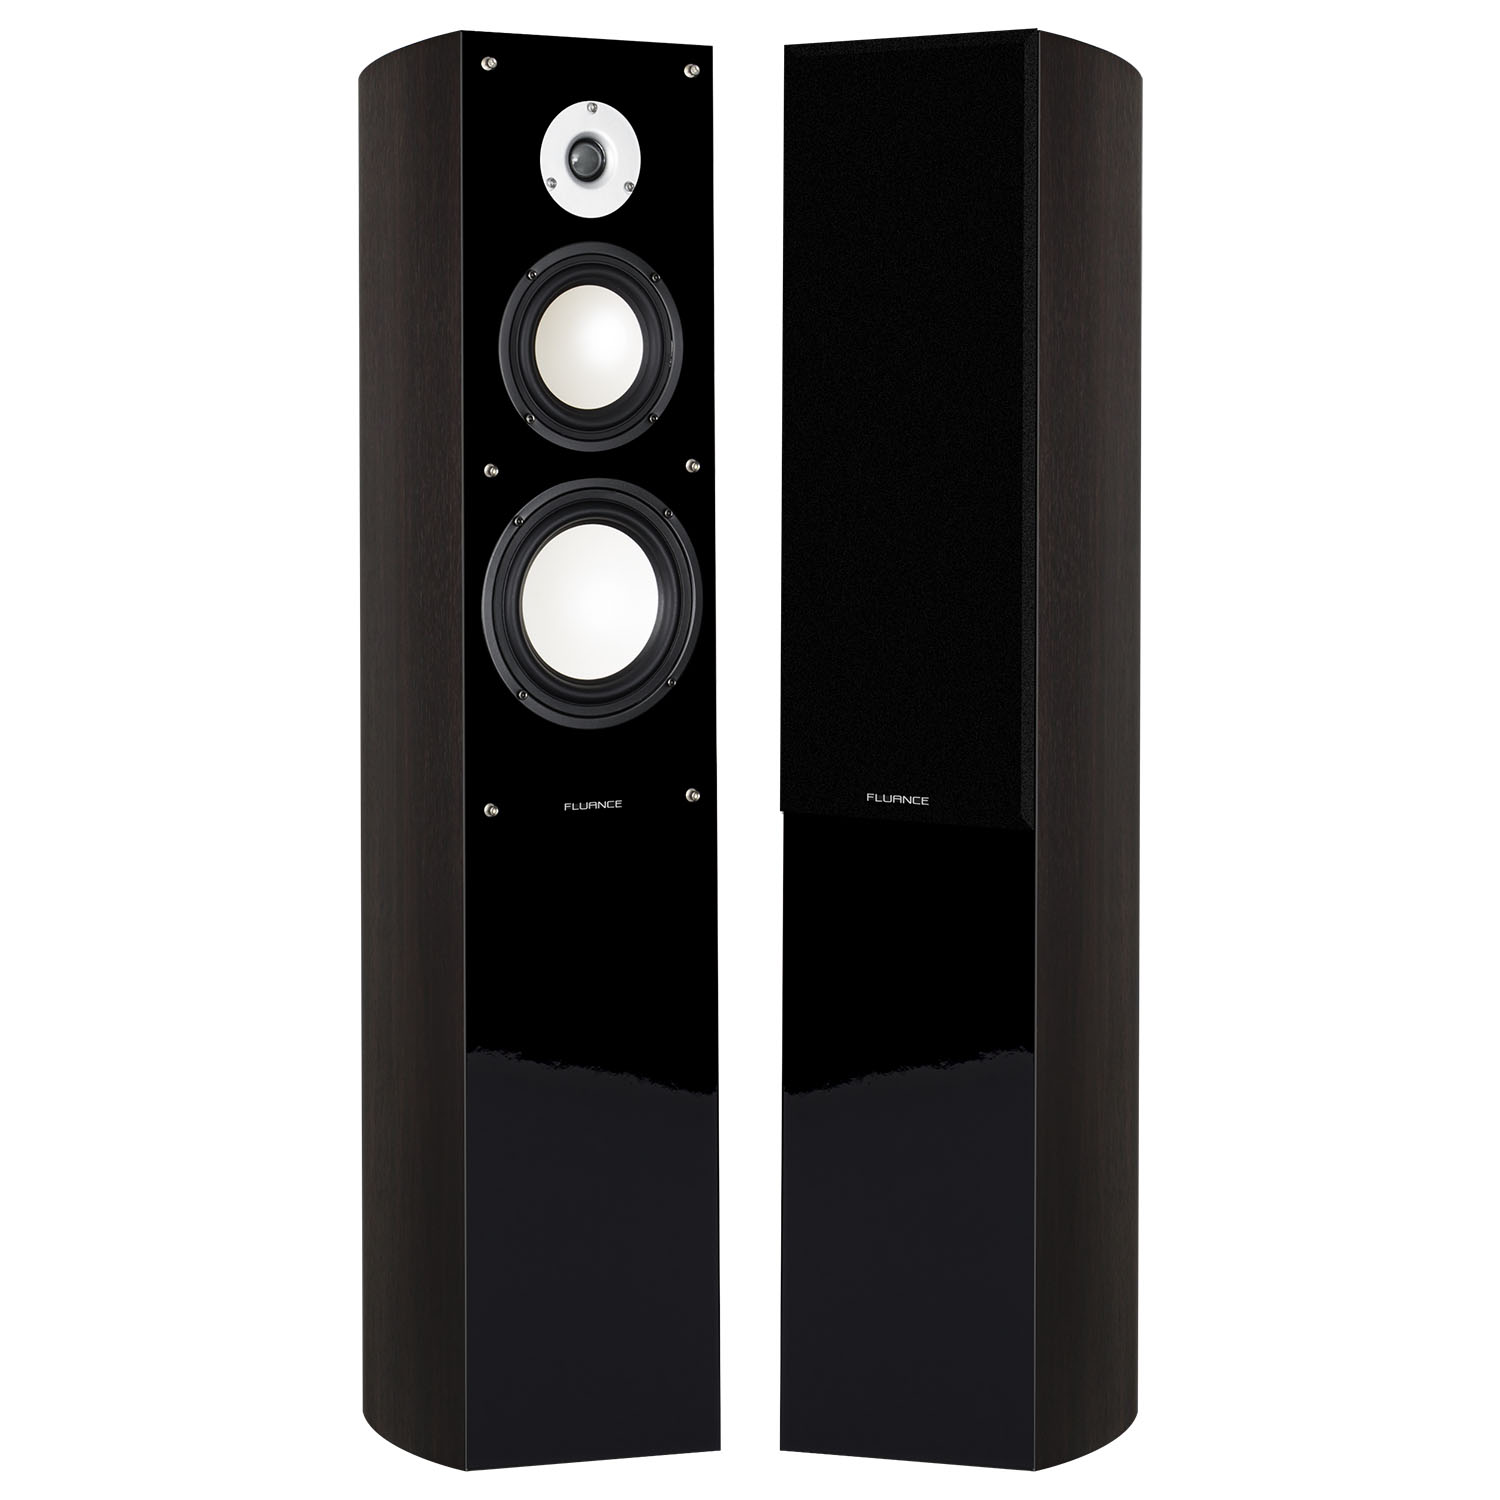 XL5FDW High Performance Three-way Floorstanding Tower Speakers